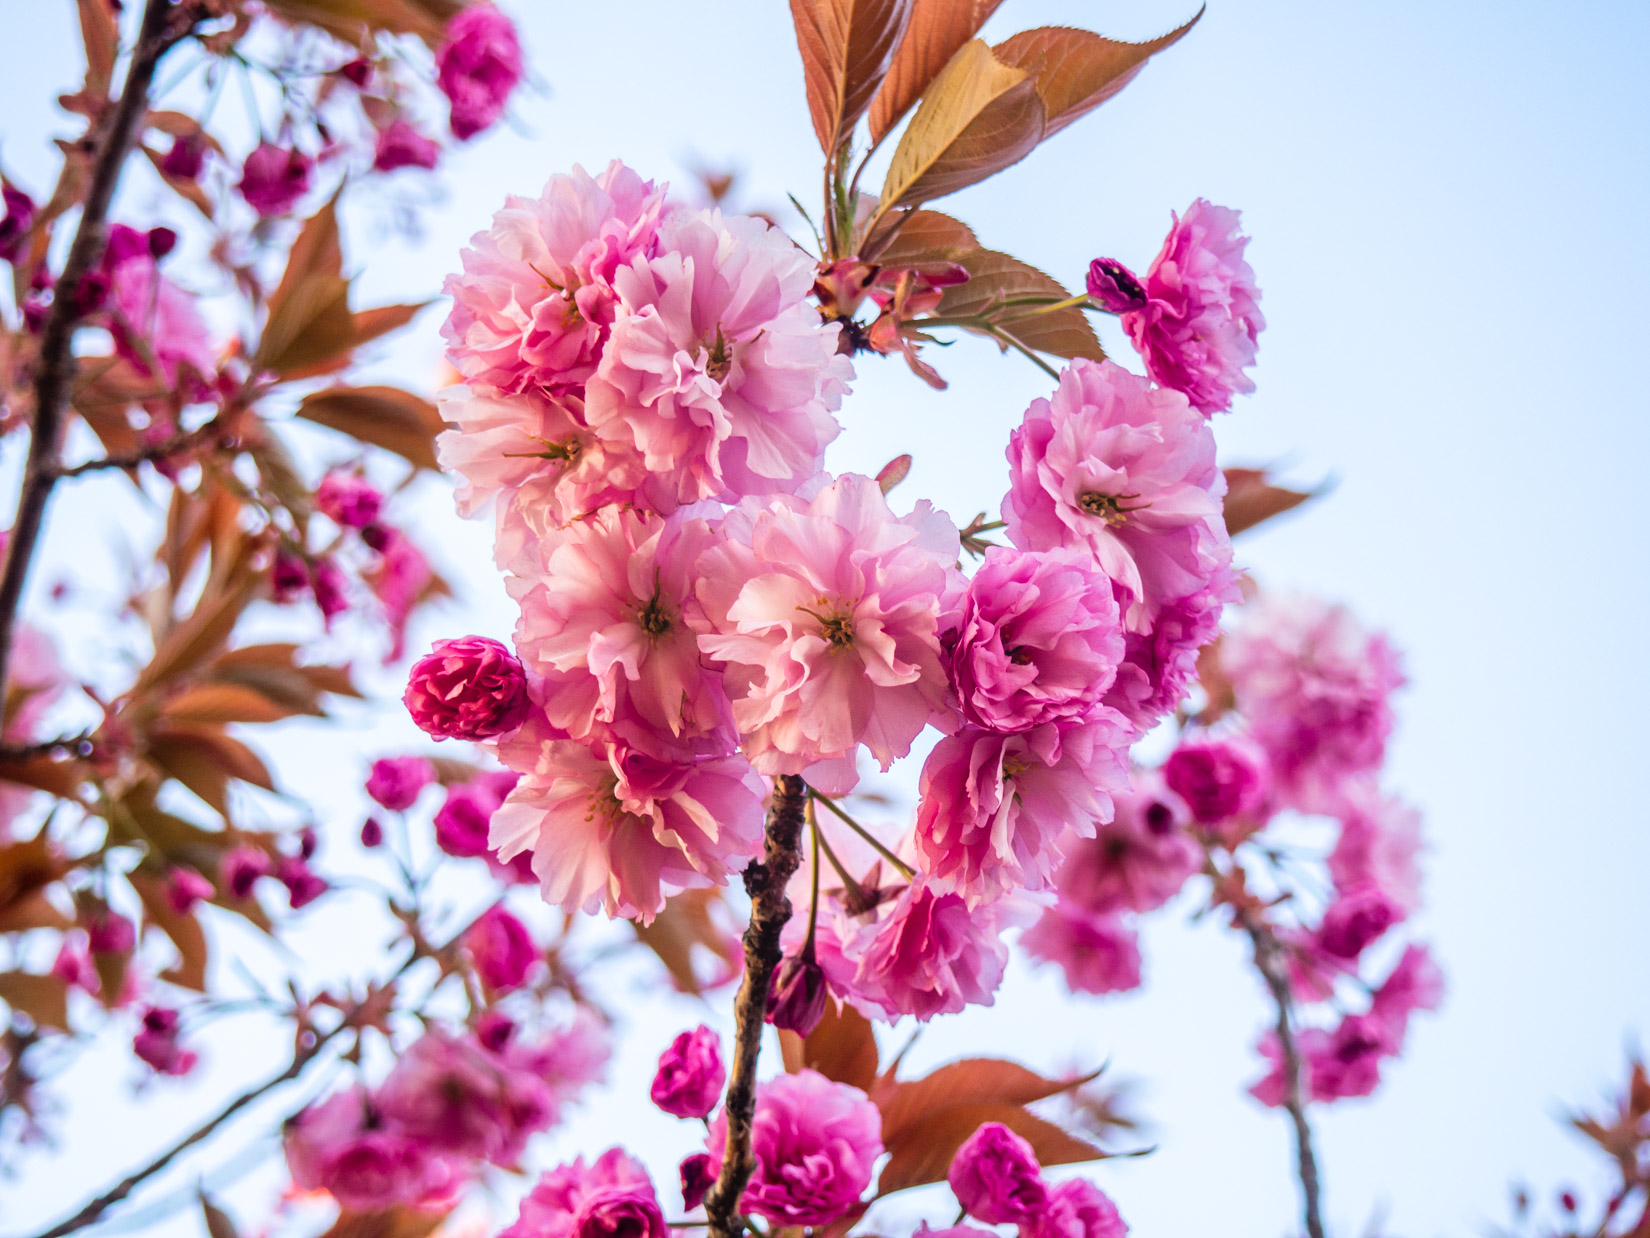 Pink Flowers in Tree